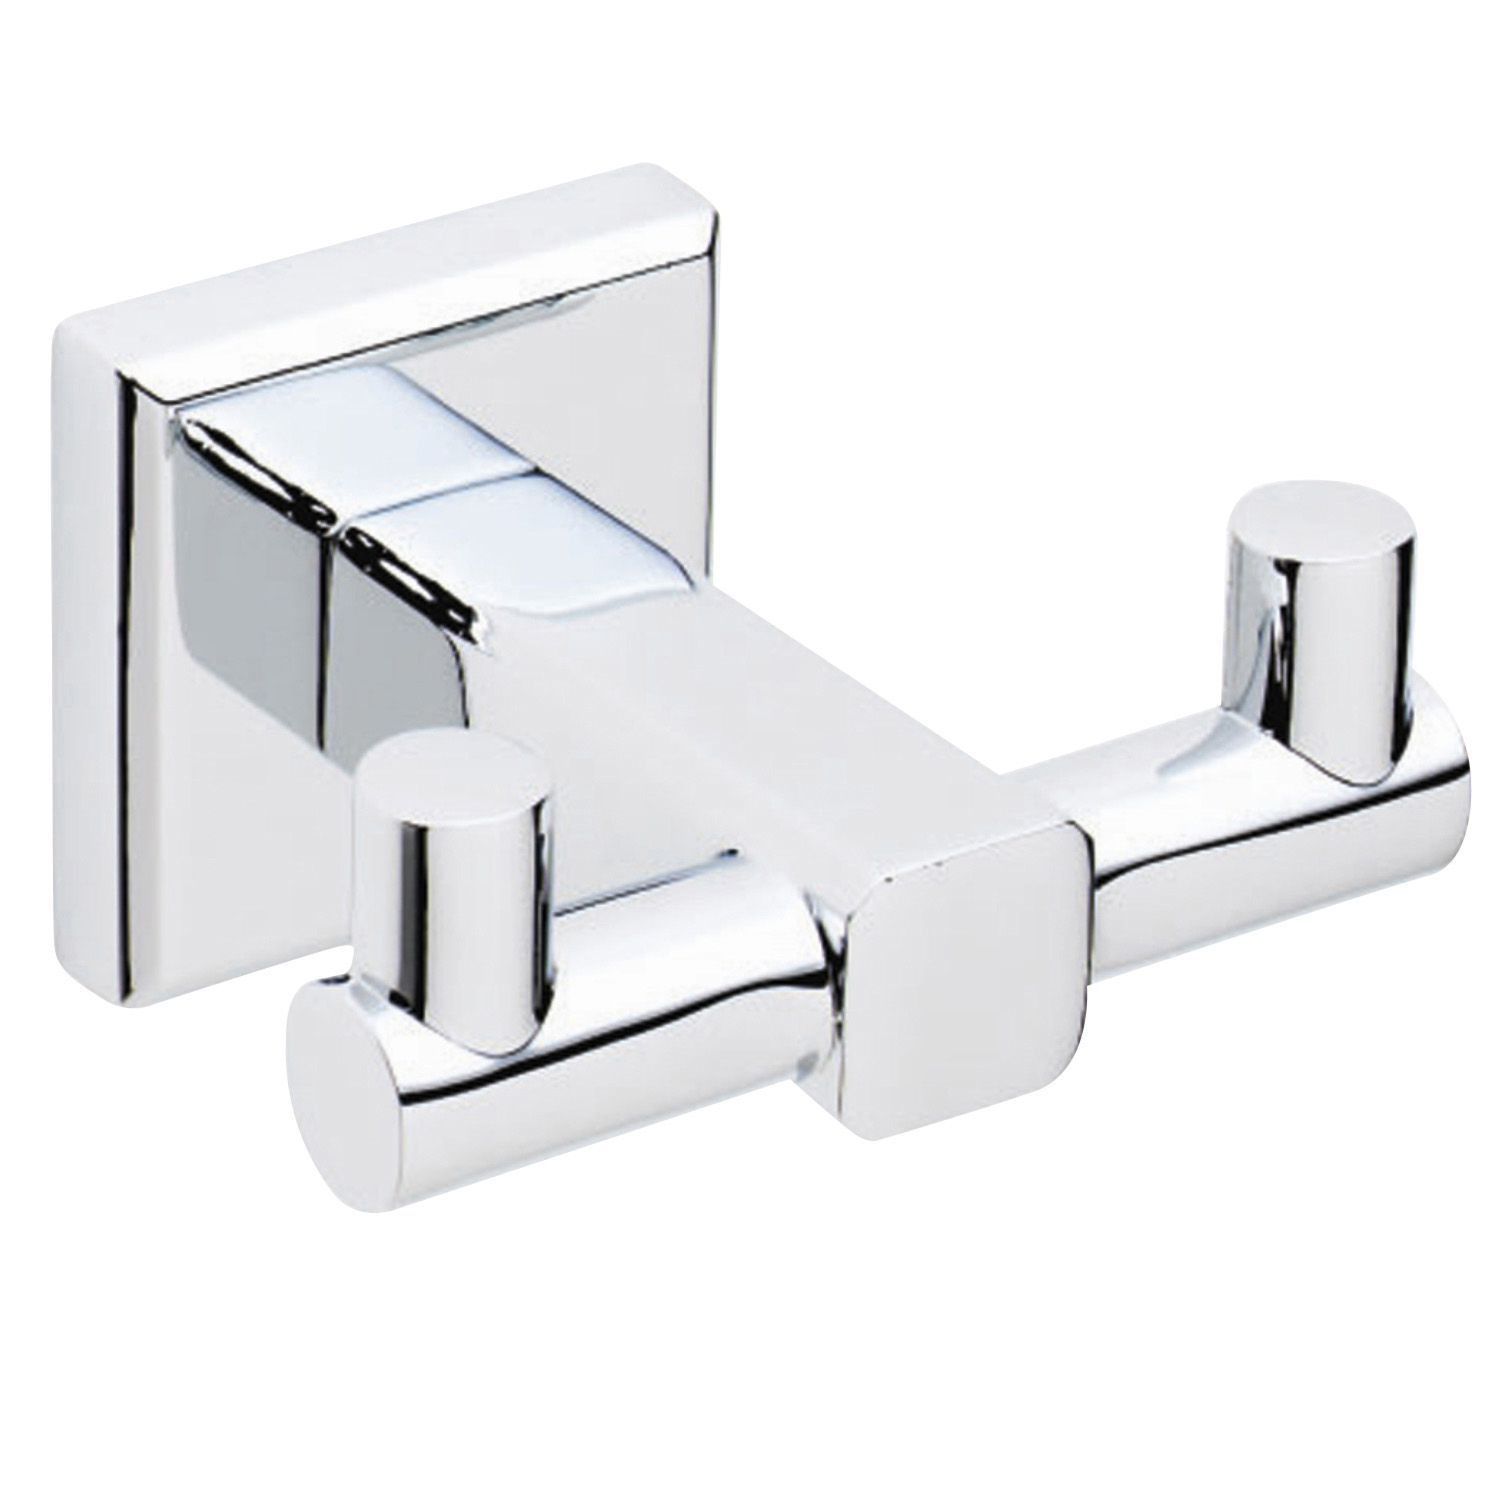 Cooke & Lewis Linear Silver Chrome Effect Robe Hook